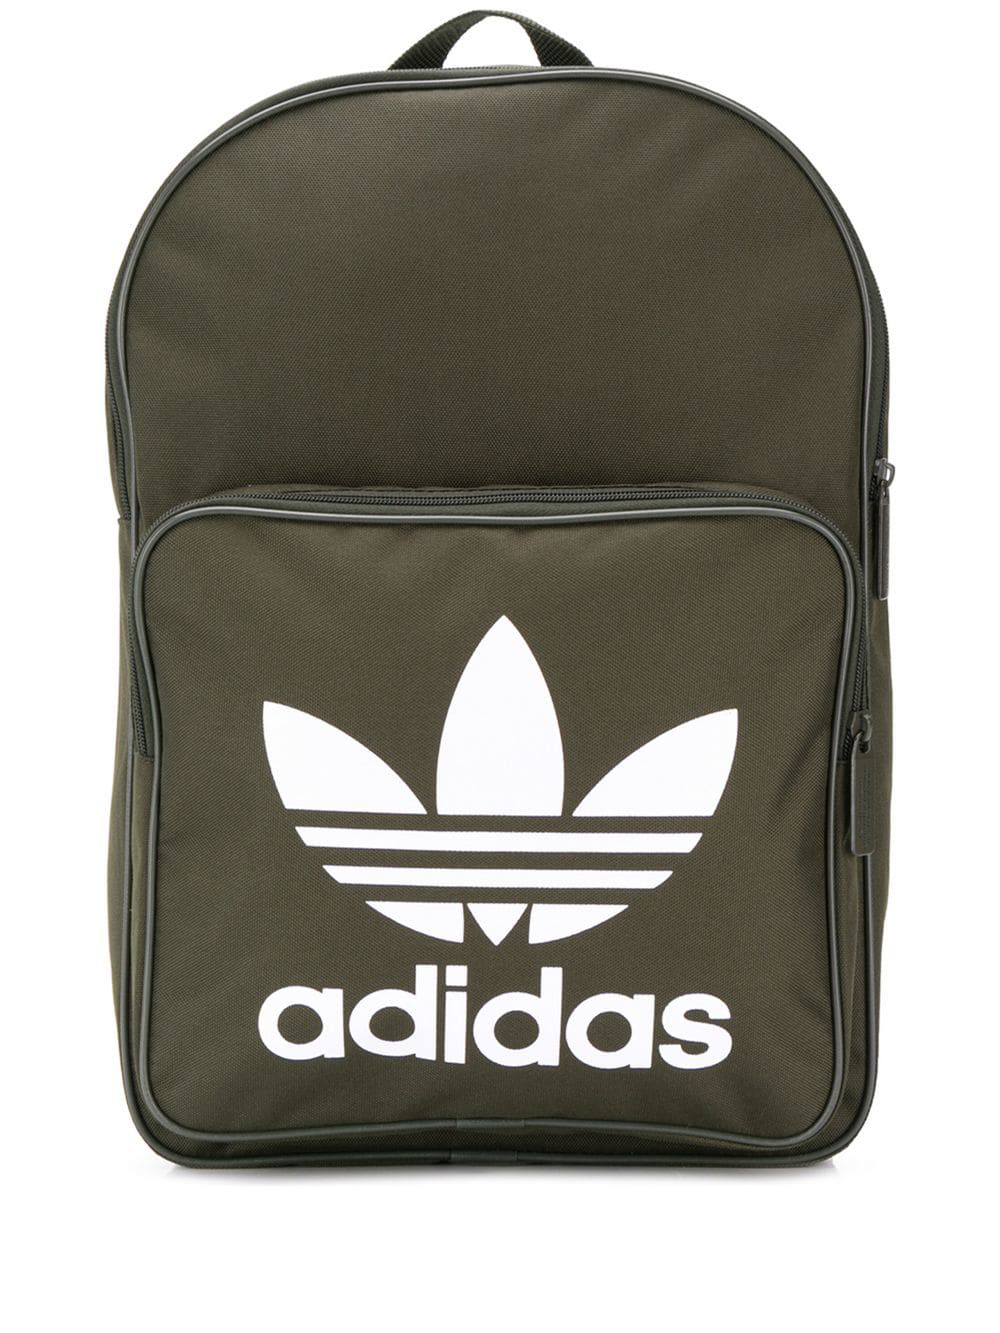 5a13563f7d71 Adidas Originals Adidas Classic Trefoil Backpack - Green